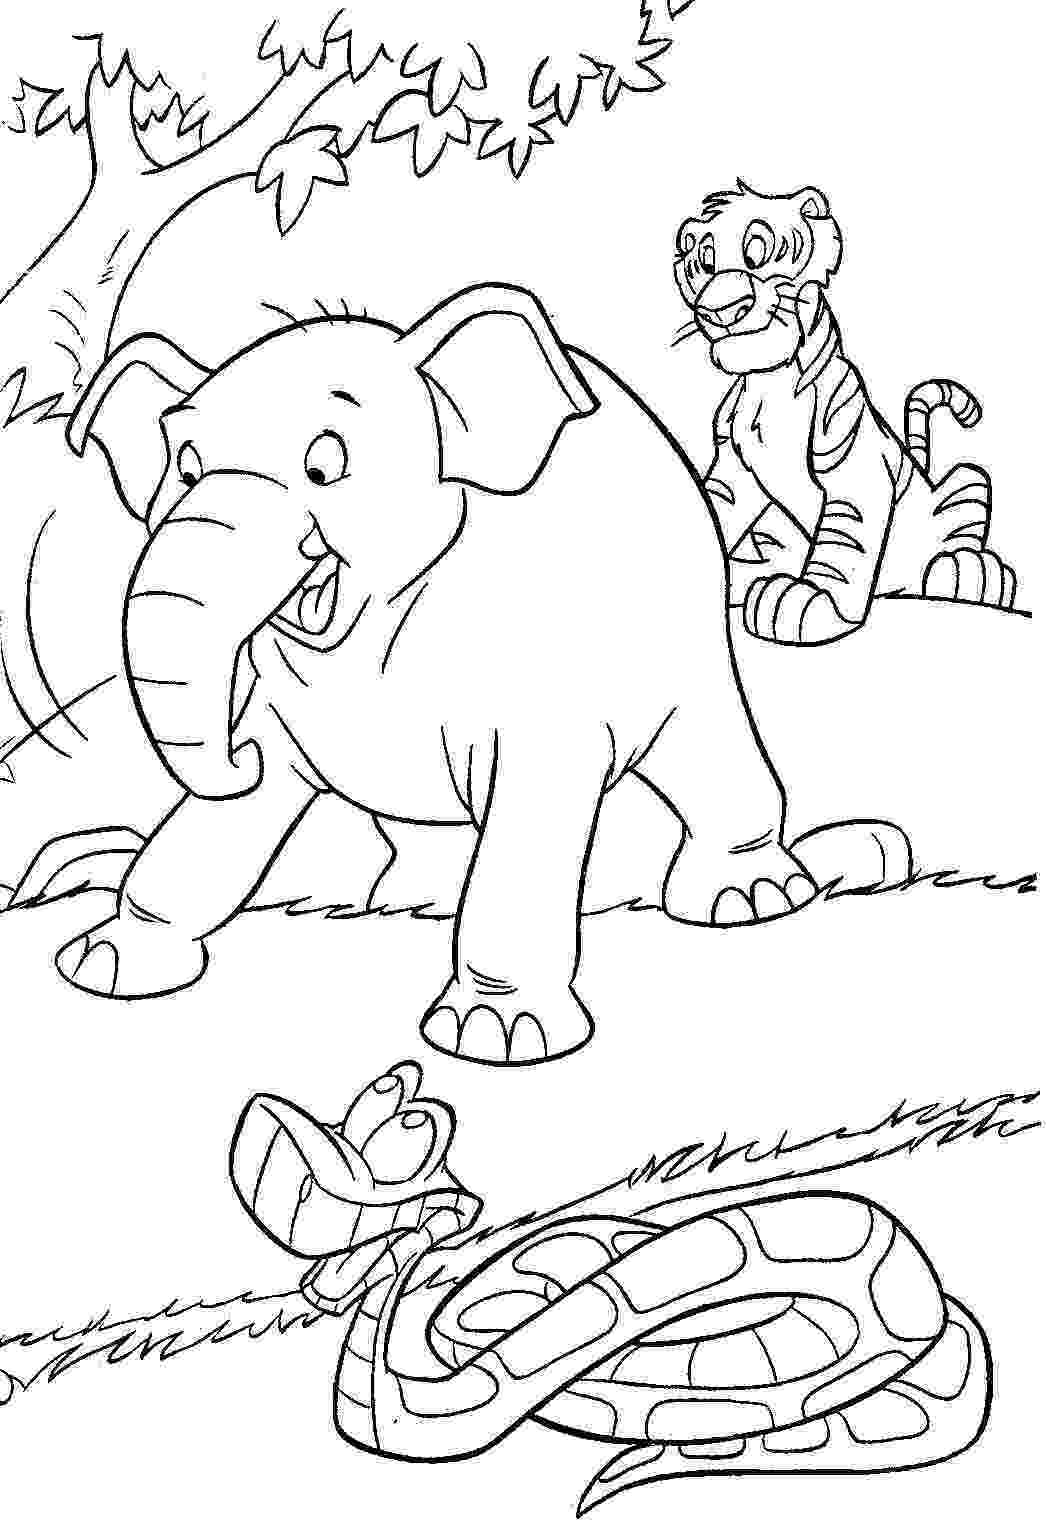 jungle animal coloring pages jungle coloring pages best coloring pages for kids animal pages jungle coloring